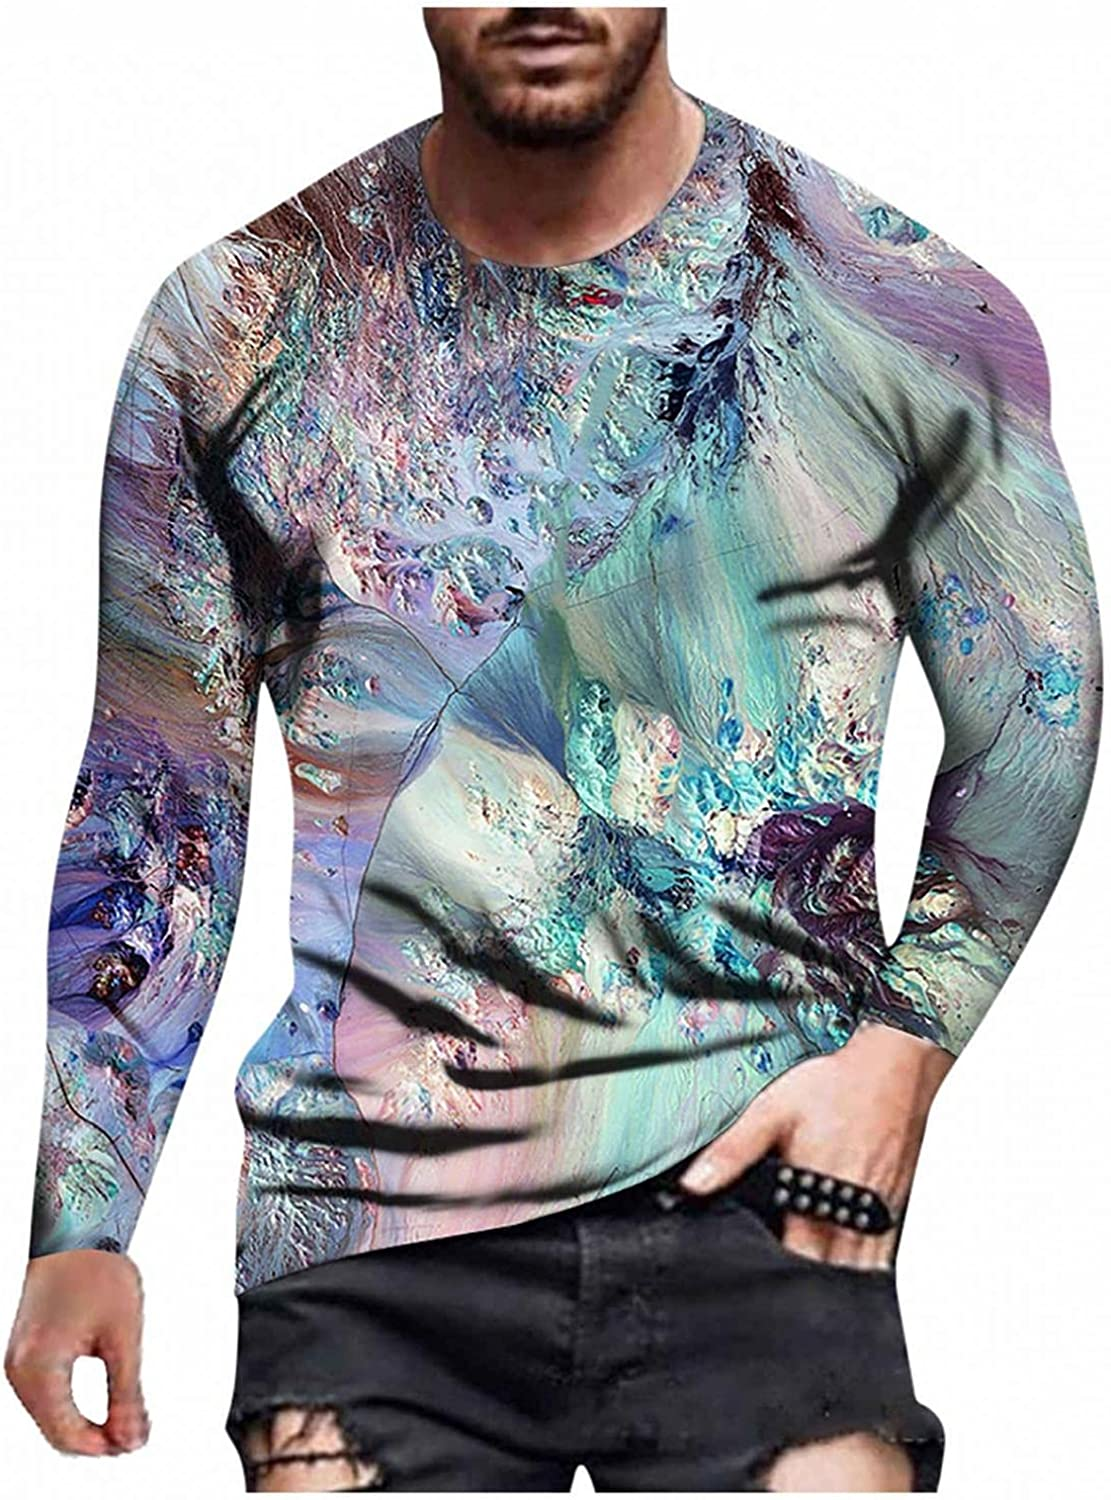 Aayomet T-Shirts for Men Fashion Printed Crewneck Long Sleeve Sweatshirts Casual Workout Sport Tops Tee Shirts Blouses